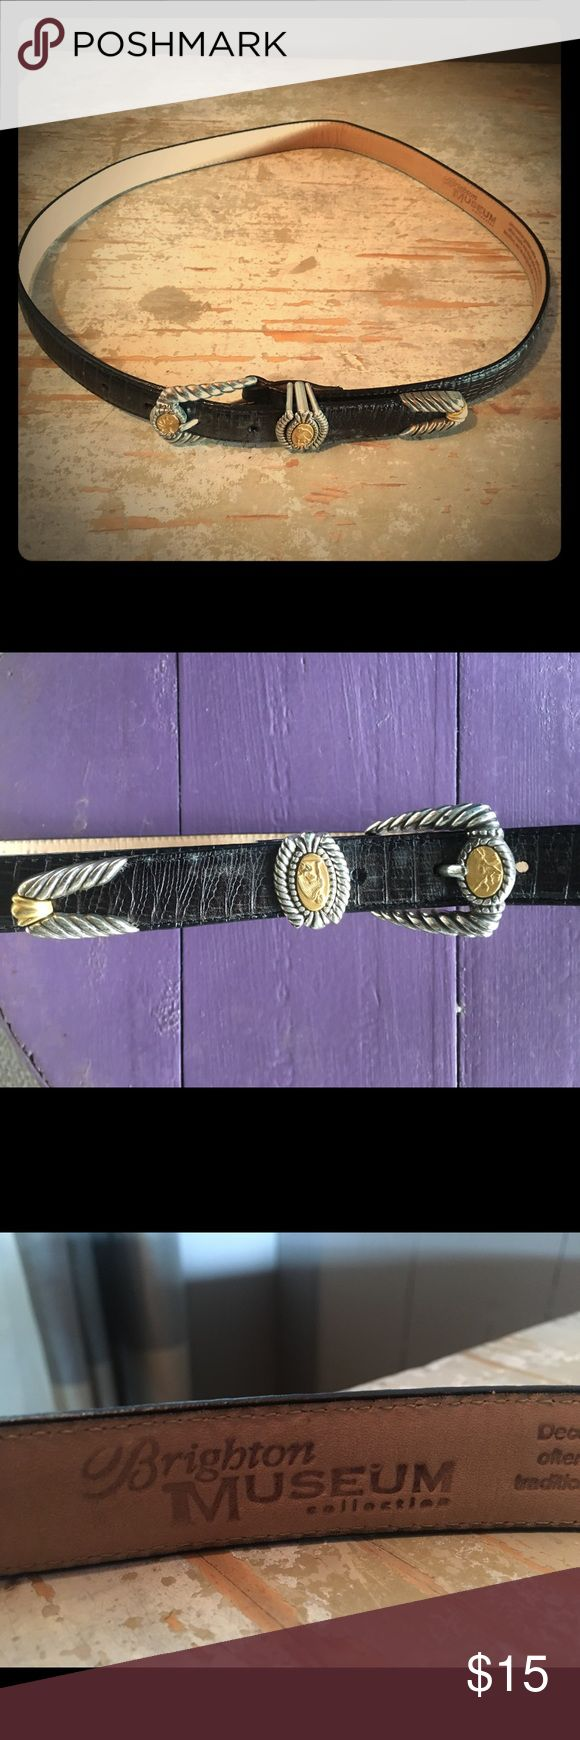 Brighton belt Black with silver and gold Brighton Museum belt. Brighton Accessories Belts